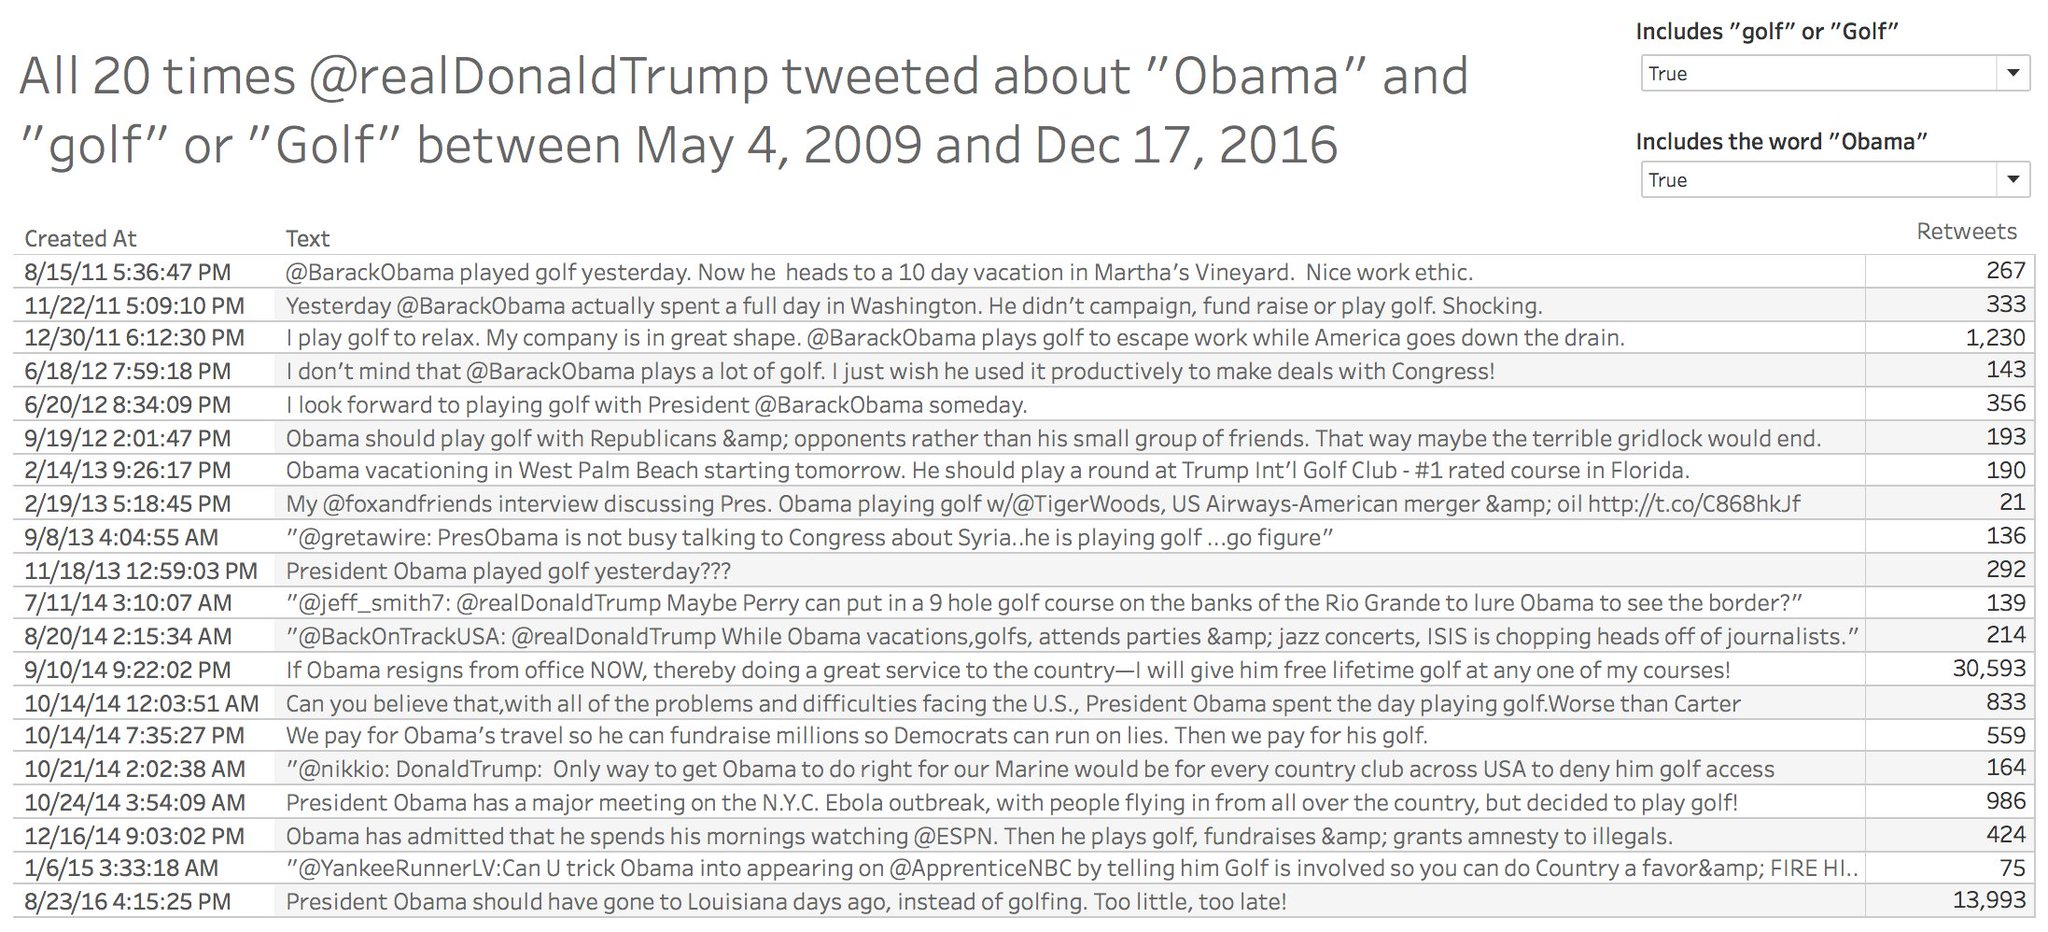 All 20 times @realDonaldTrump tweeted a criticism of @BarackObama for golfing while serving as president. h/t @tommyunger for data mining https://t.co/8SSGFOURrX